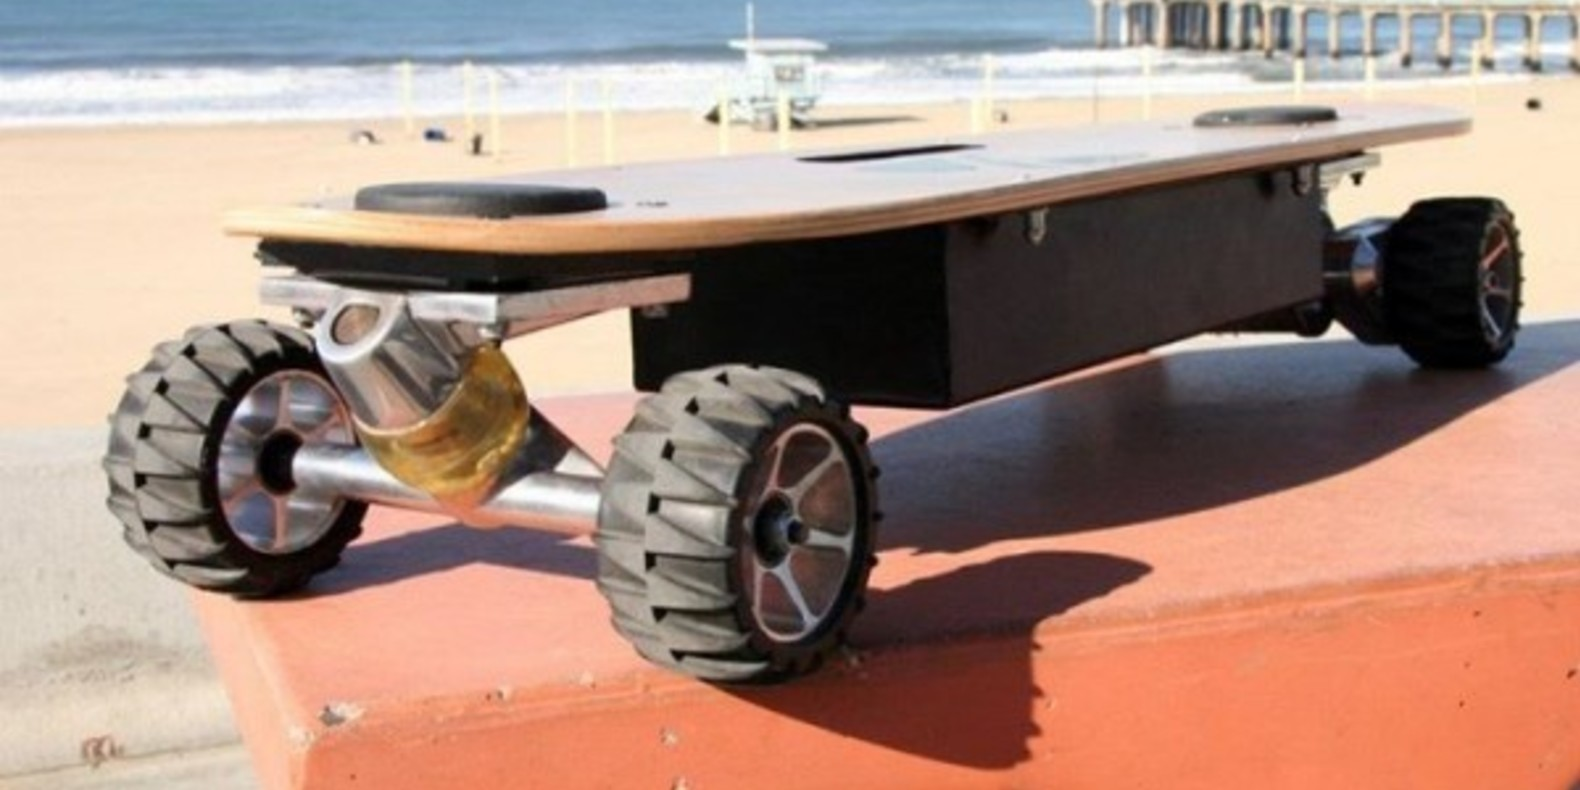 Zboard, mixes skateboard and 3D printing